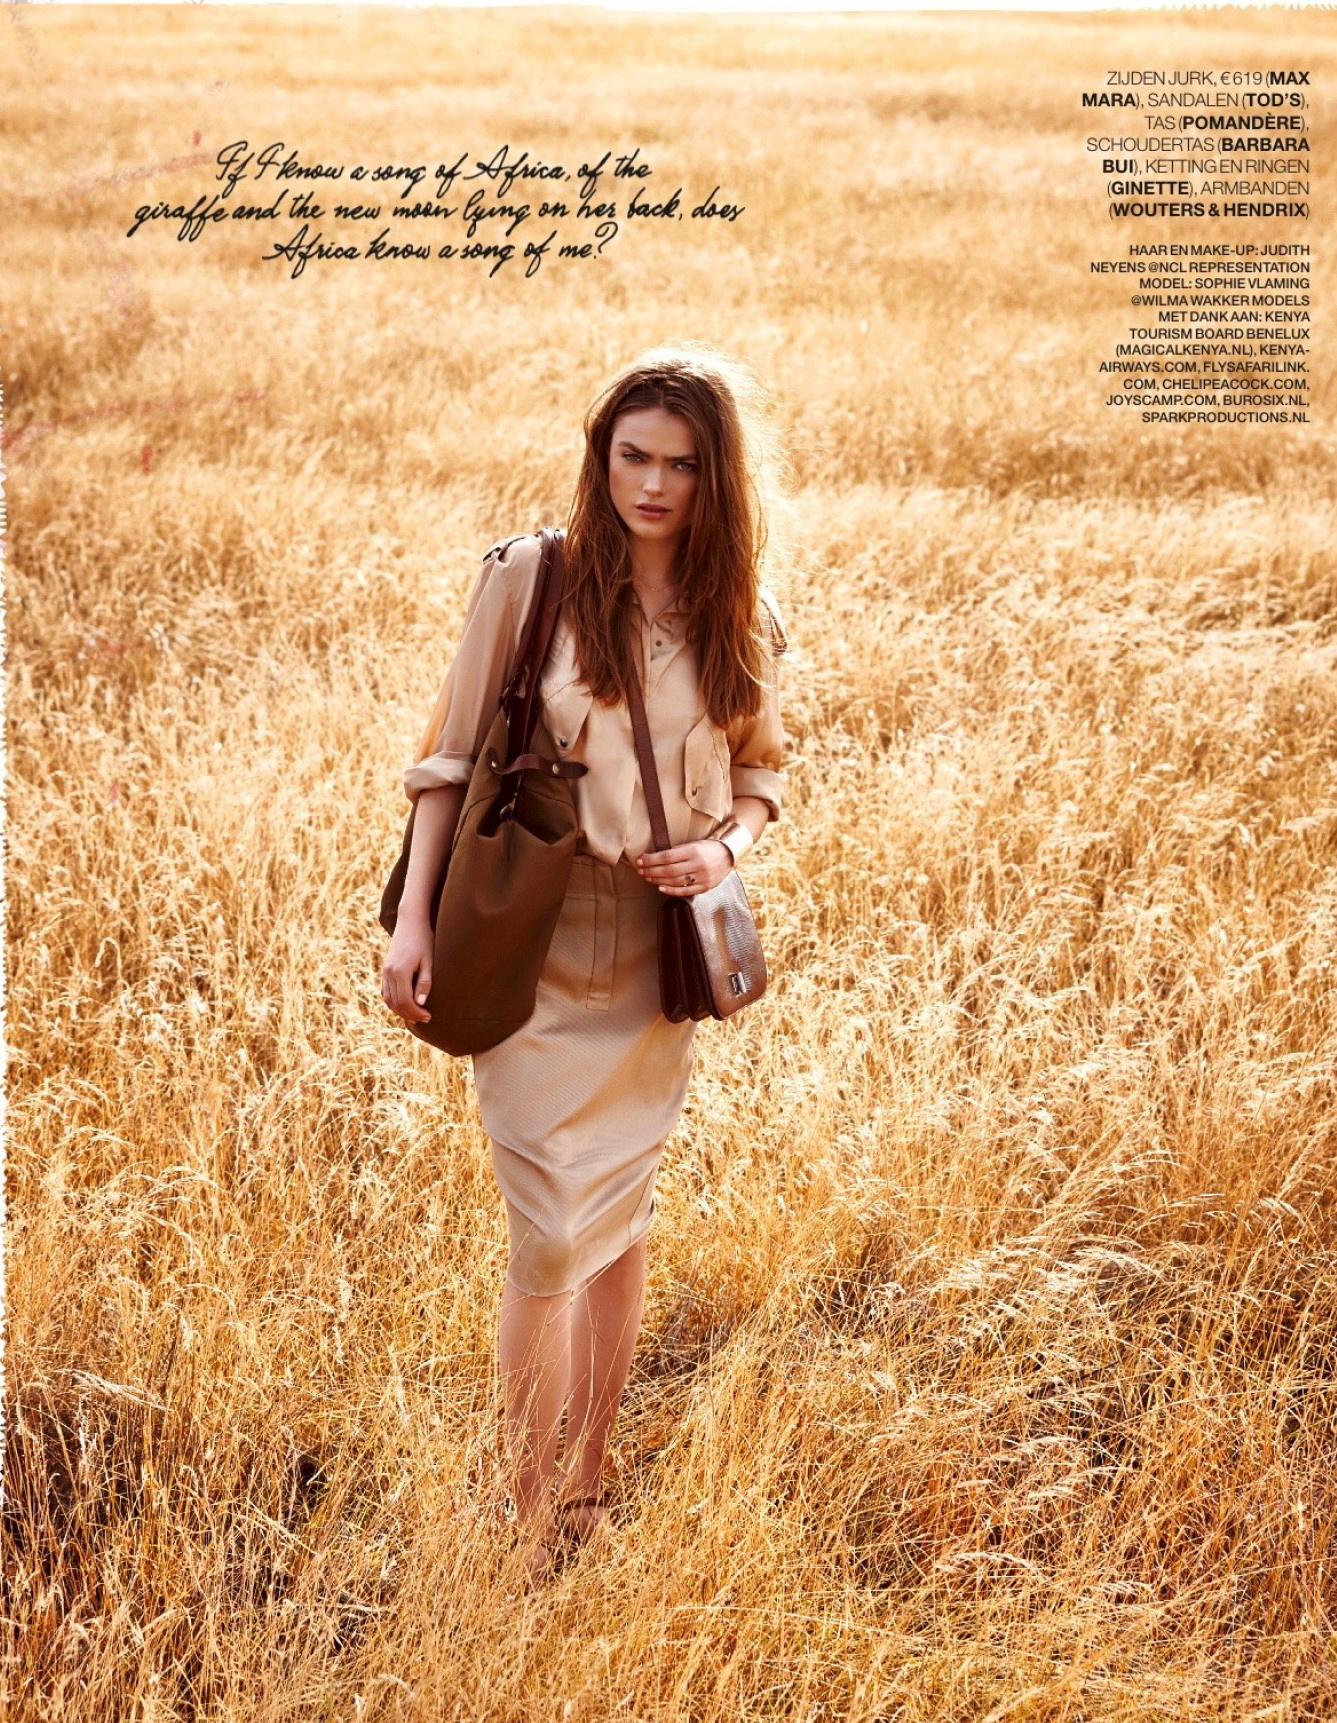 f992a6ecb2c Marie Claire[imageheight=400] | Simone Dernee Styling & Creative ...